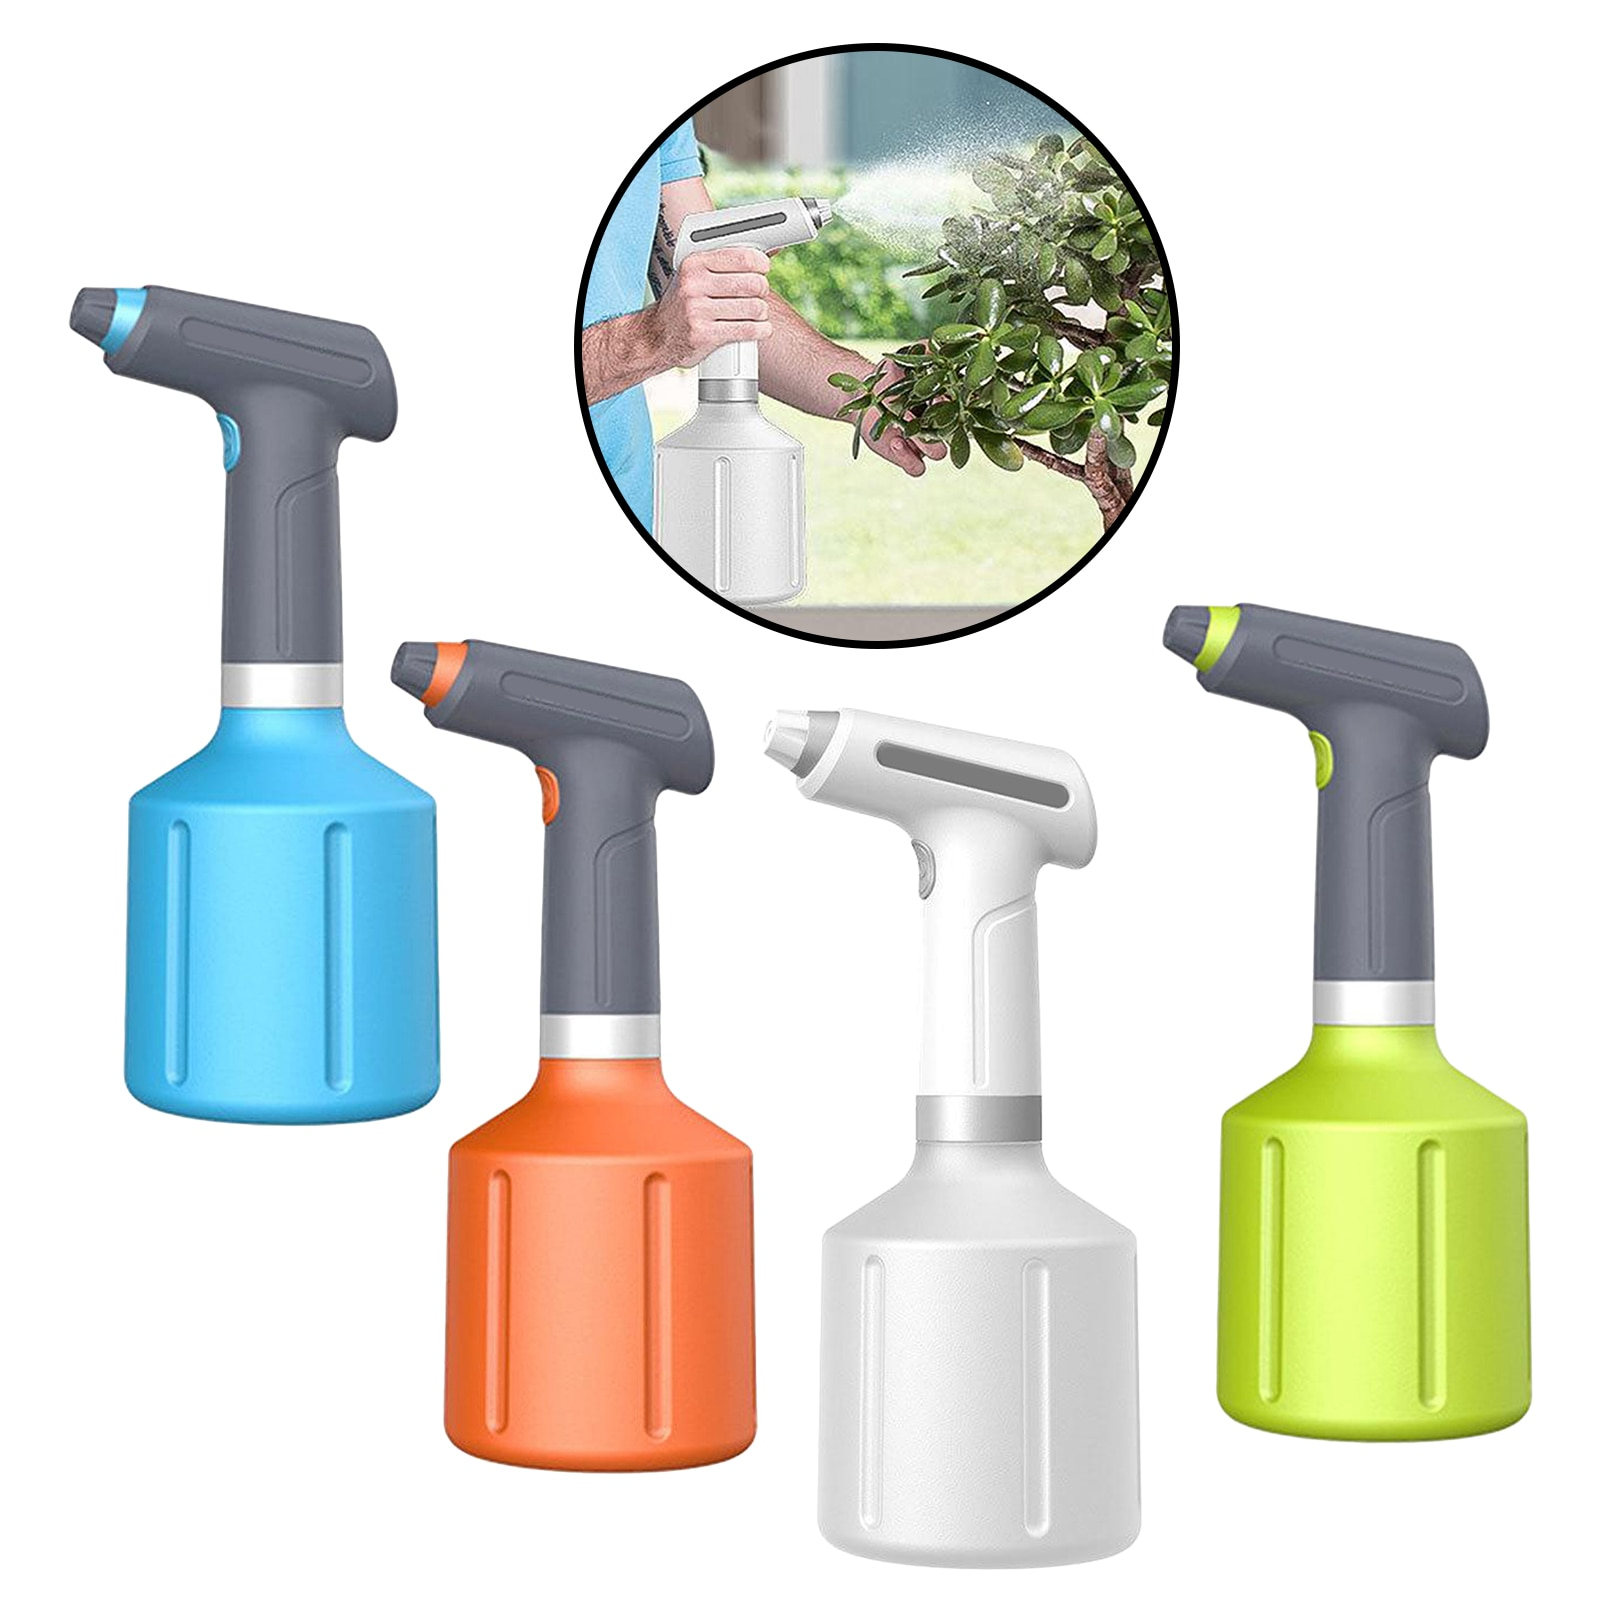 Electric Plant Spray Bottle Automatic Watering Fogger USB Electric Sanitizing Sprayer Hand Watering Machine Plants Garden Tool